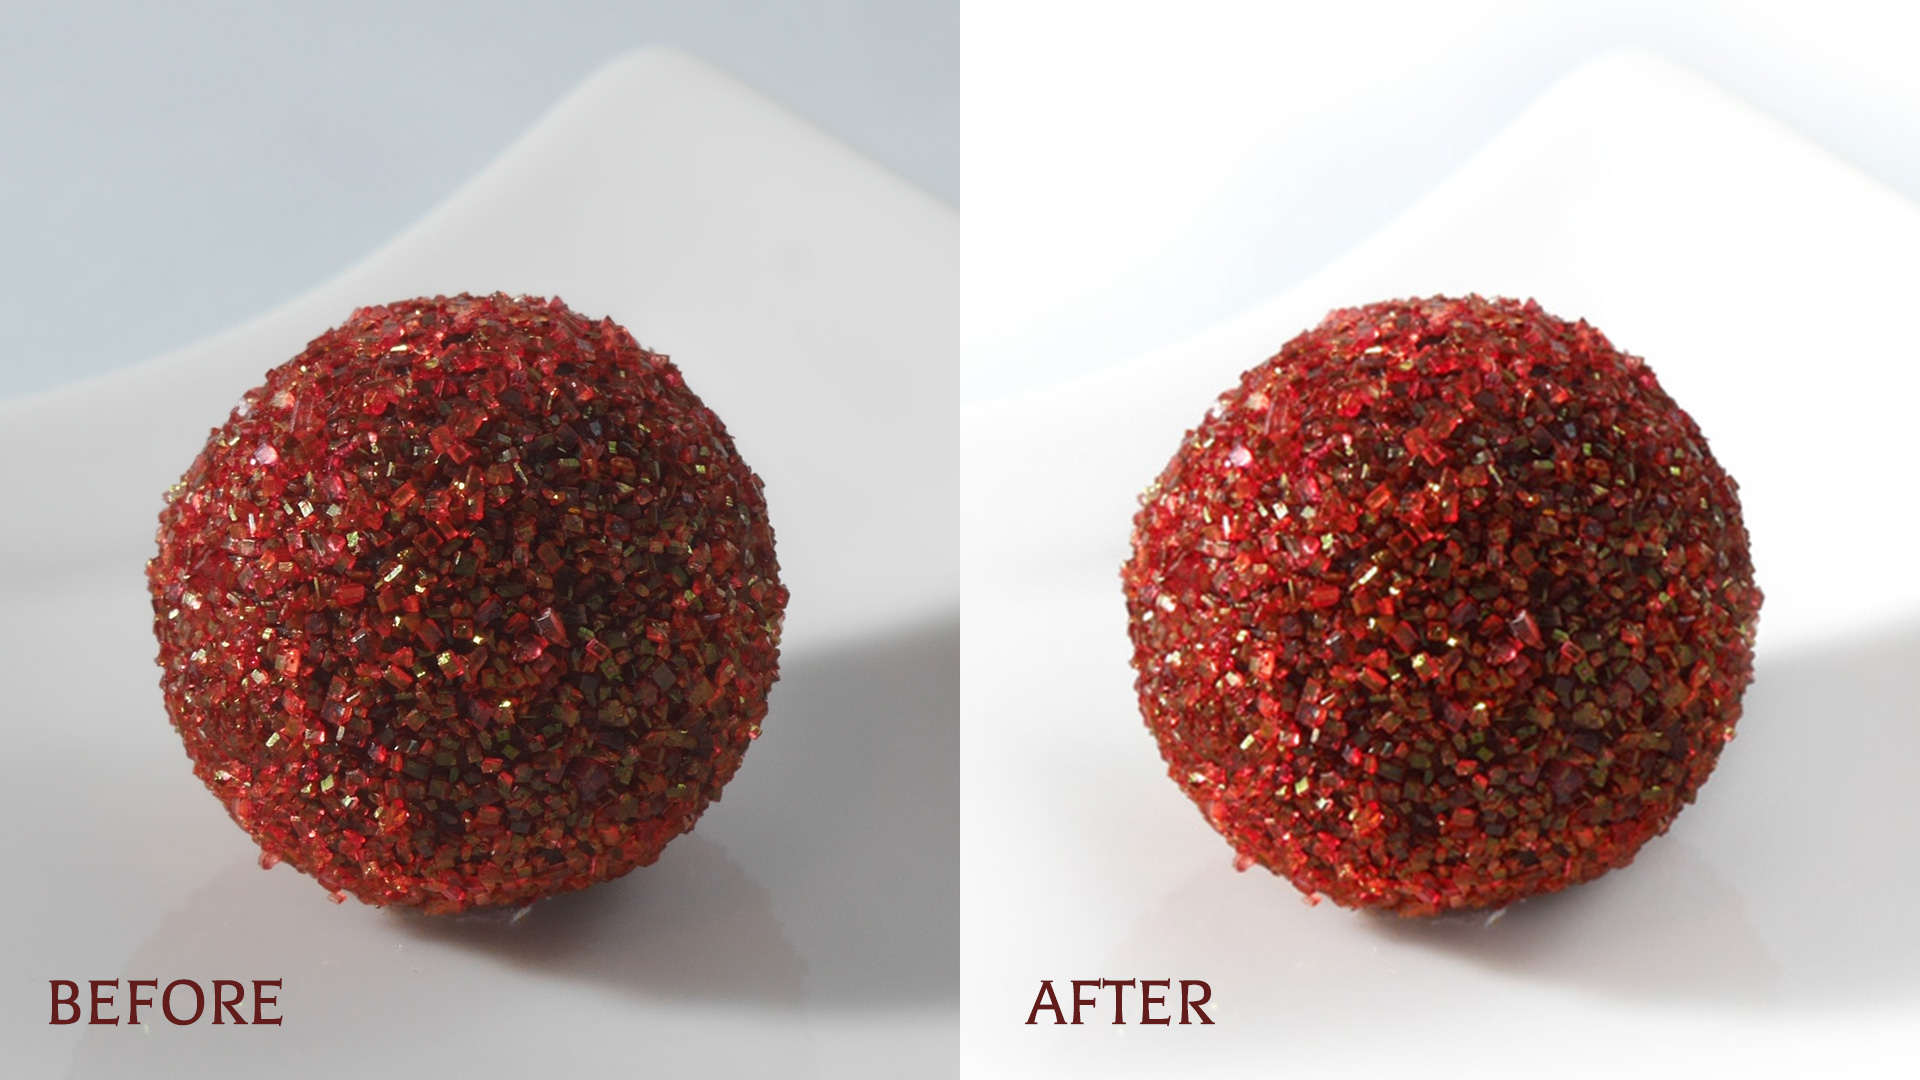 Truffle photo edit before and after